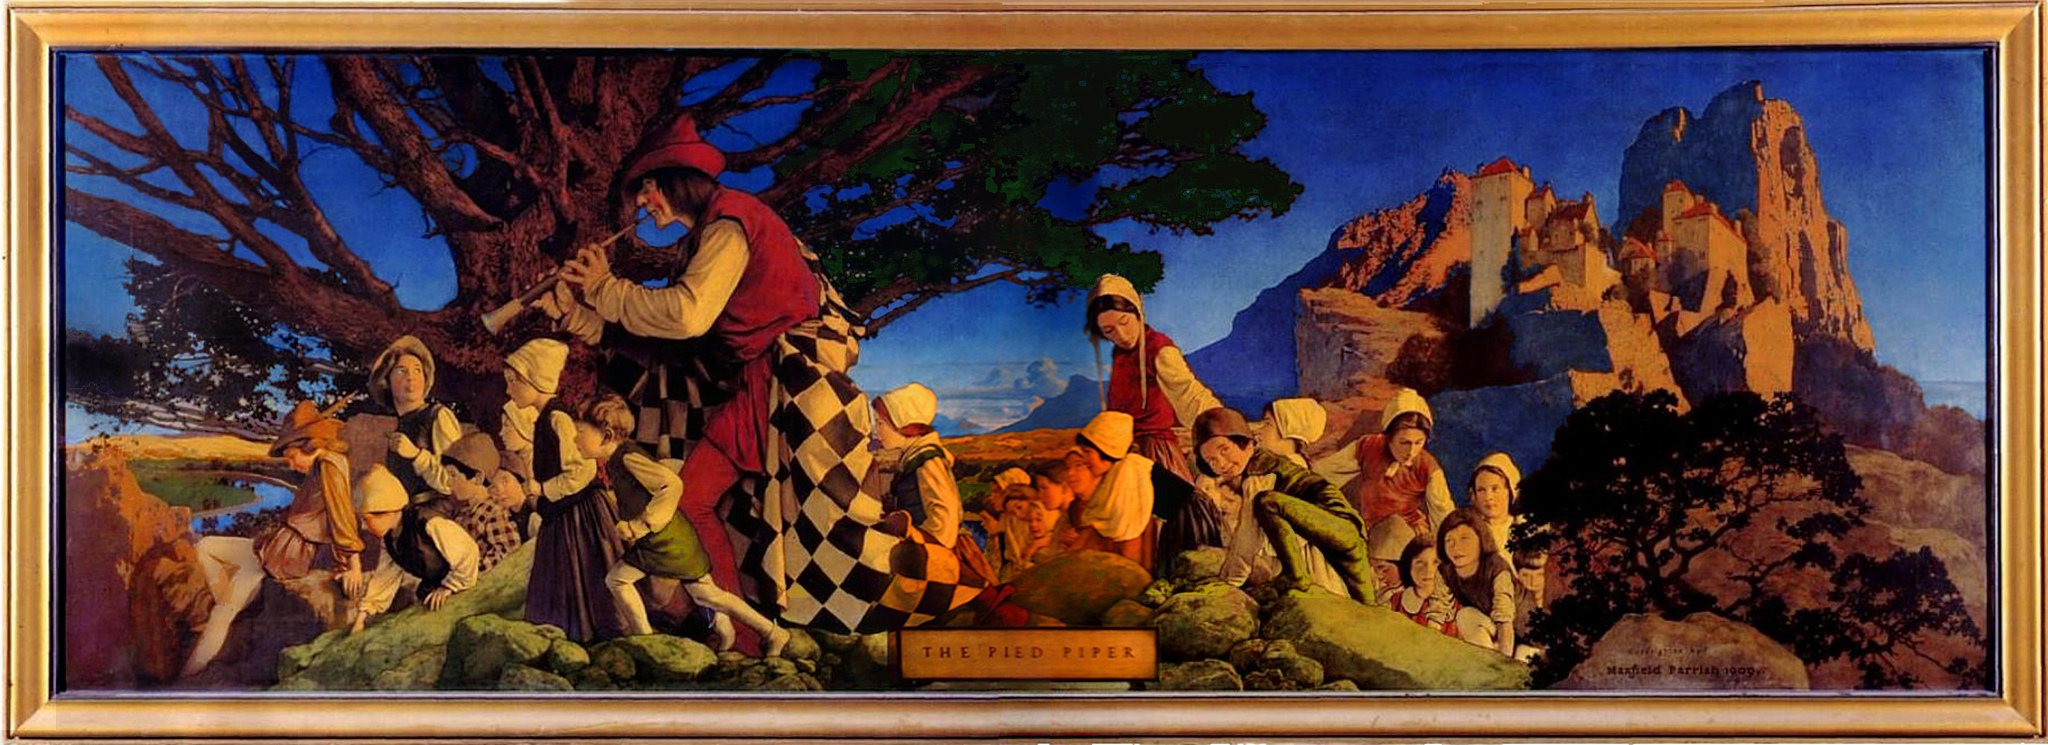 Maxfield Parrish - The Pied Piper of Hamlyn